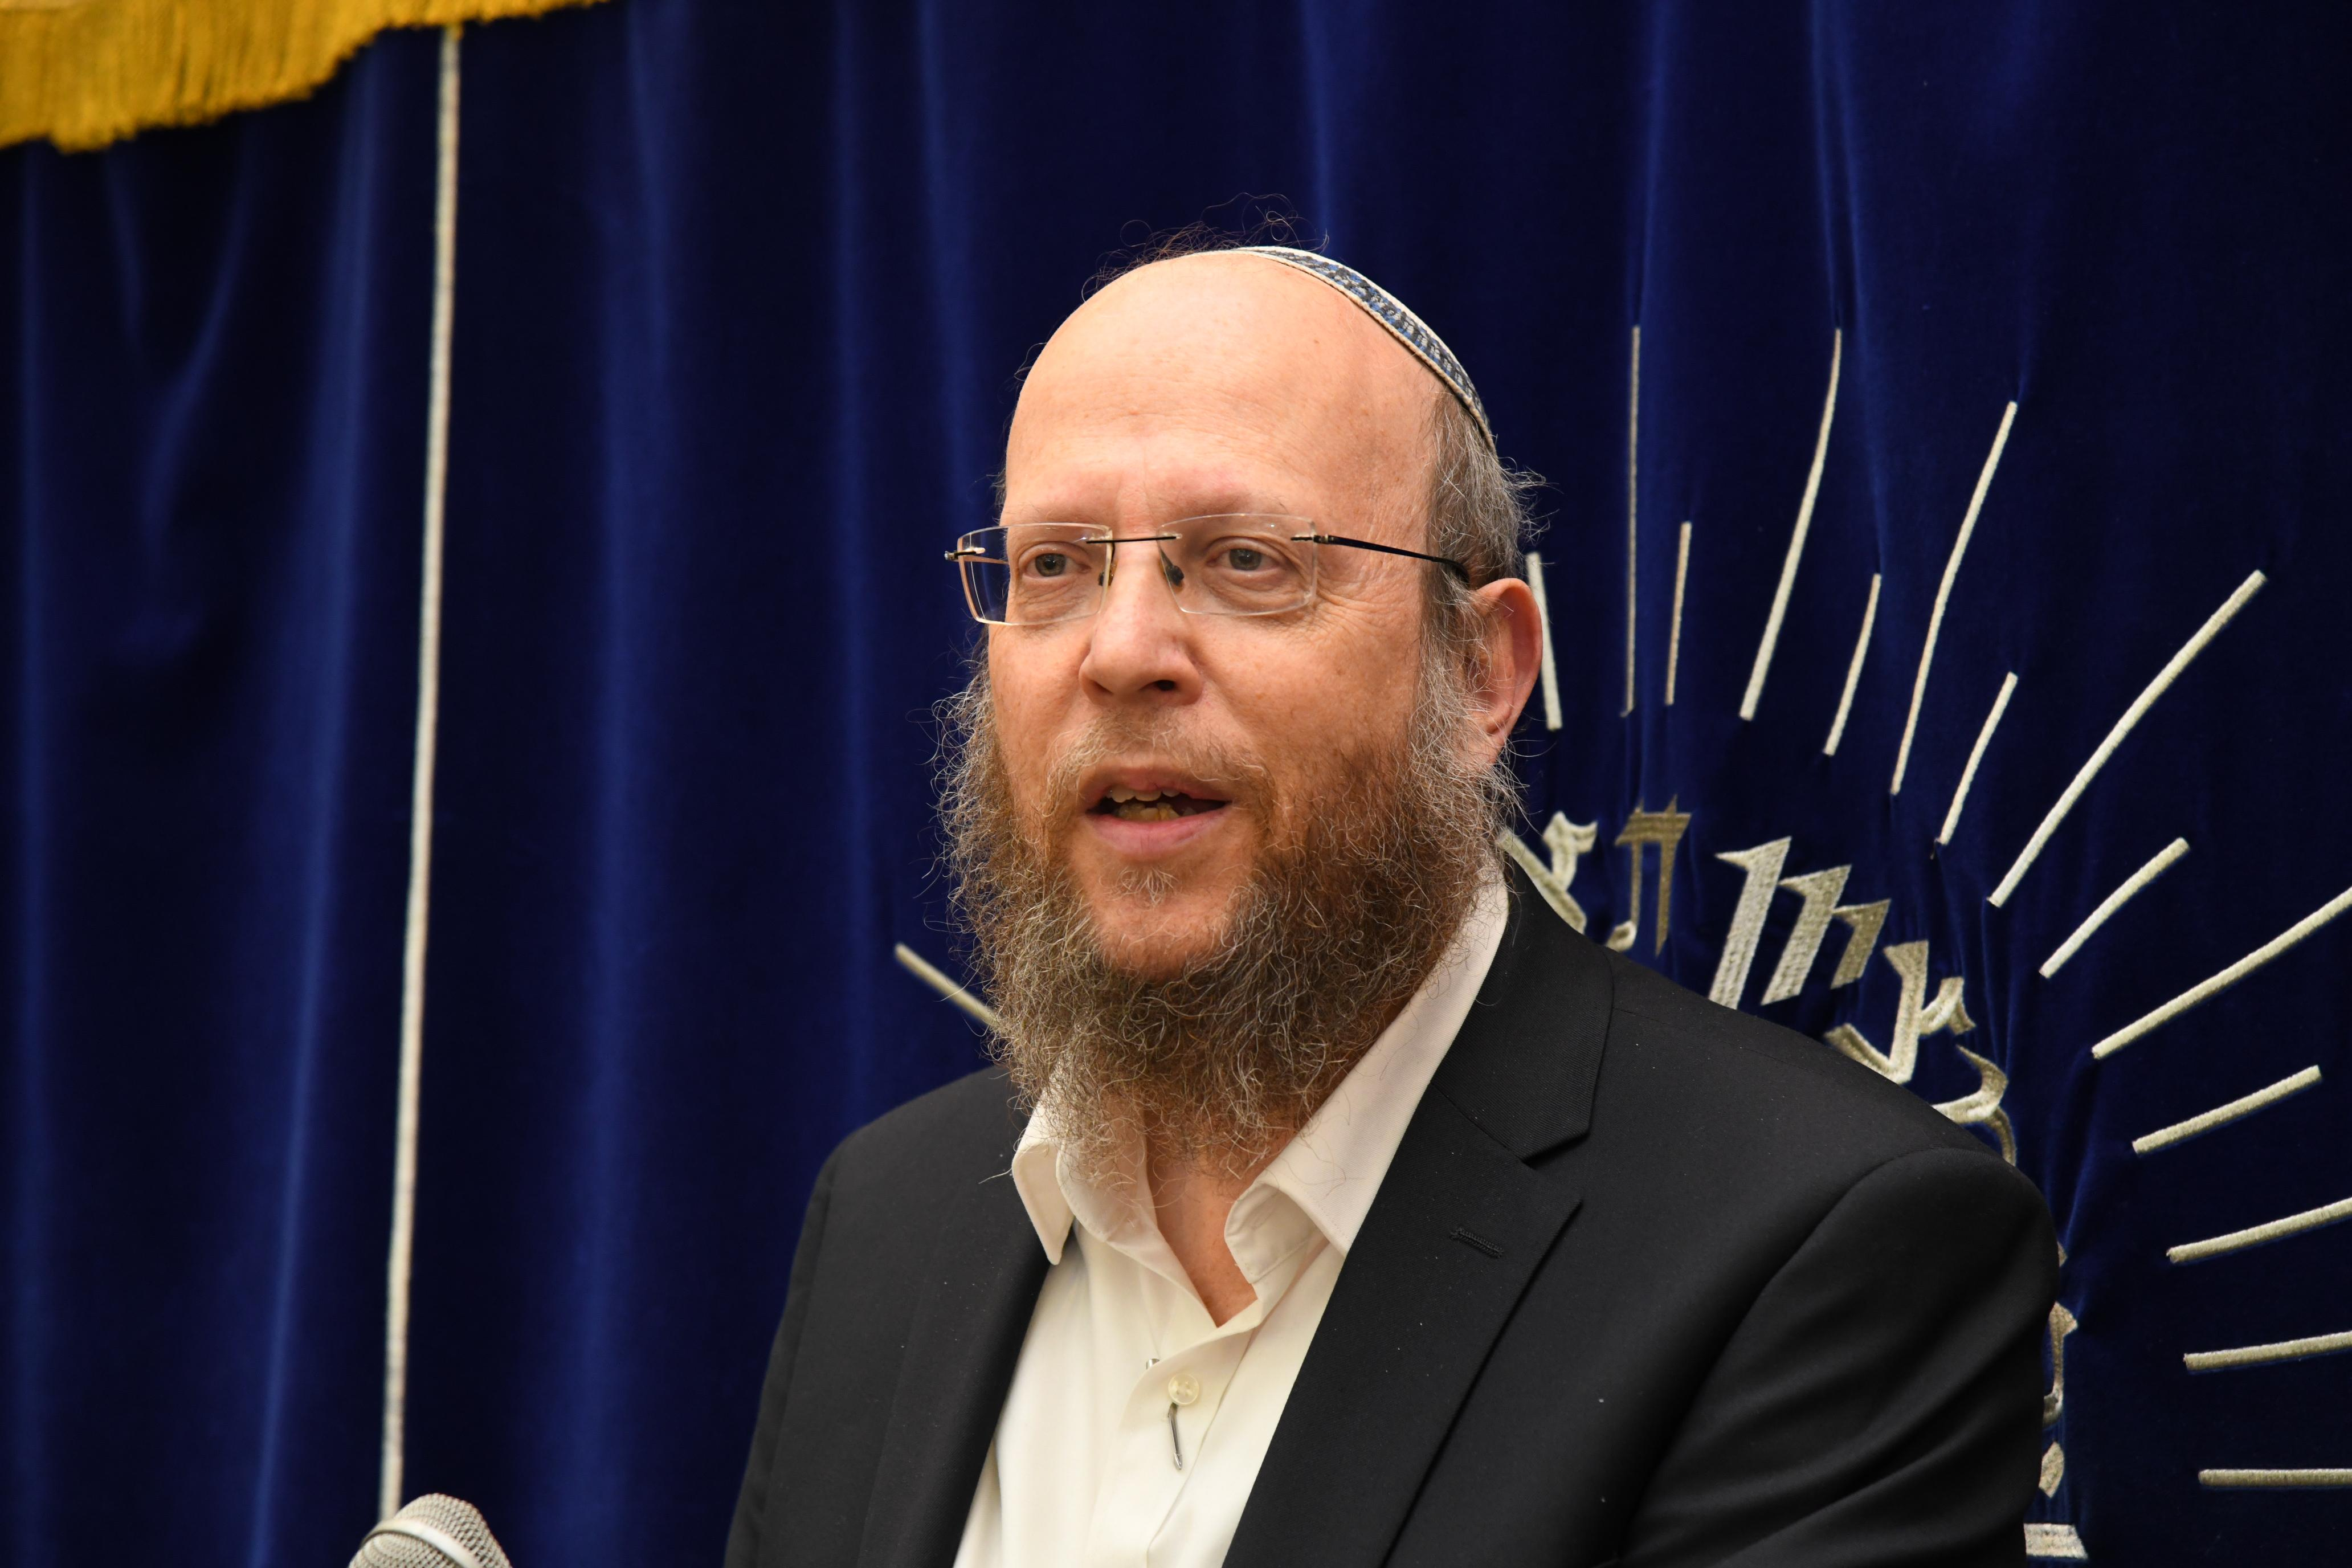 Rabbi Yair Gizbar